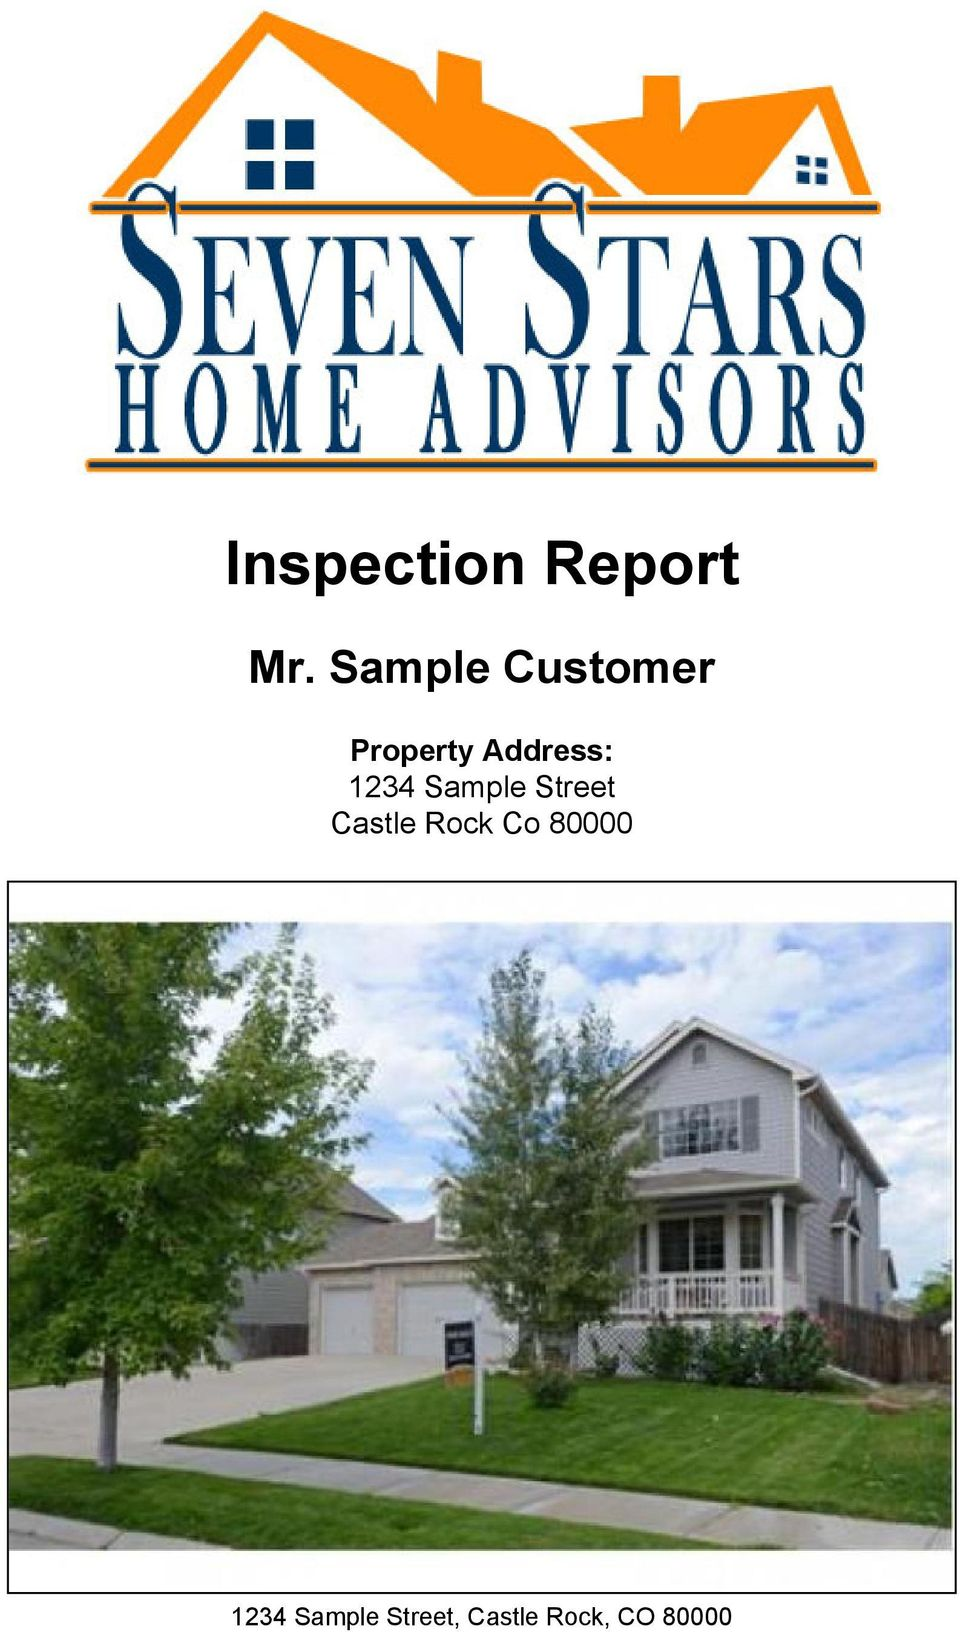 1234 Sample Street Castle Rock Co